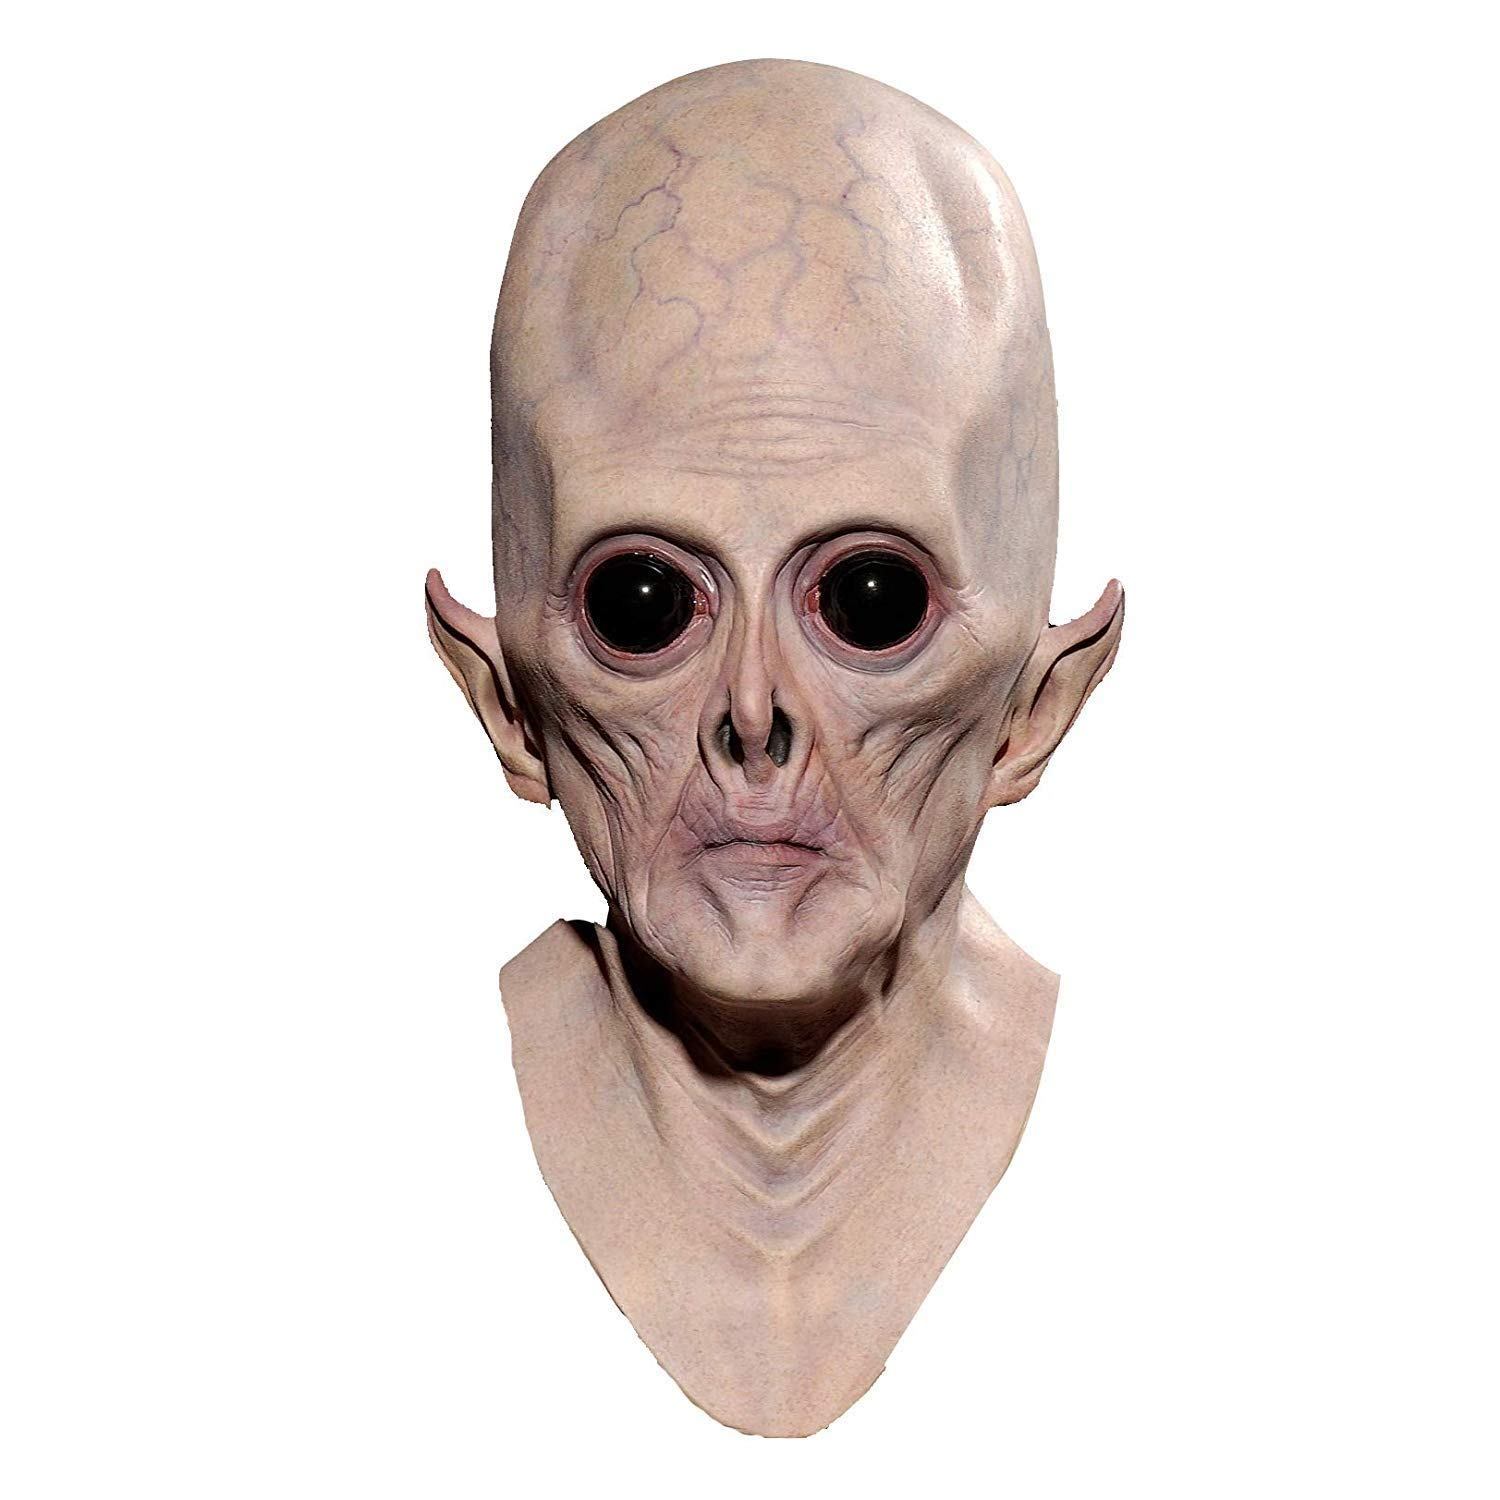 KX-QIN Novelty Latex Halloween Mask Creepy Latex Alien Head Mask for Adults Masquerade Costume Party Cosplay Sloth Head Masks Very Horrible by KX-QIN